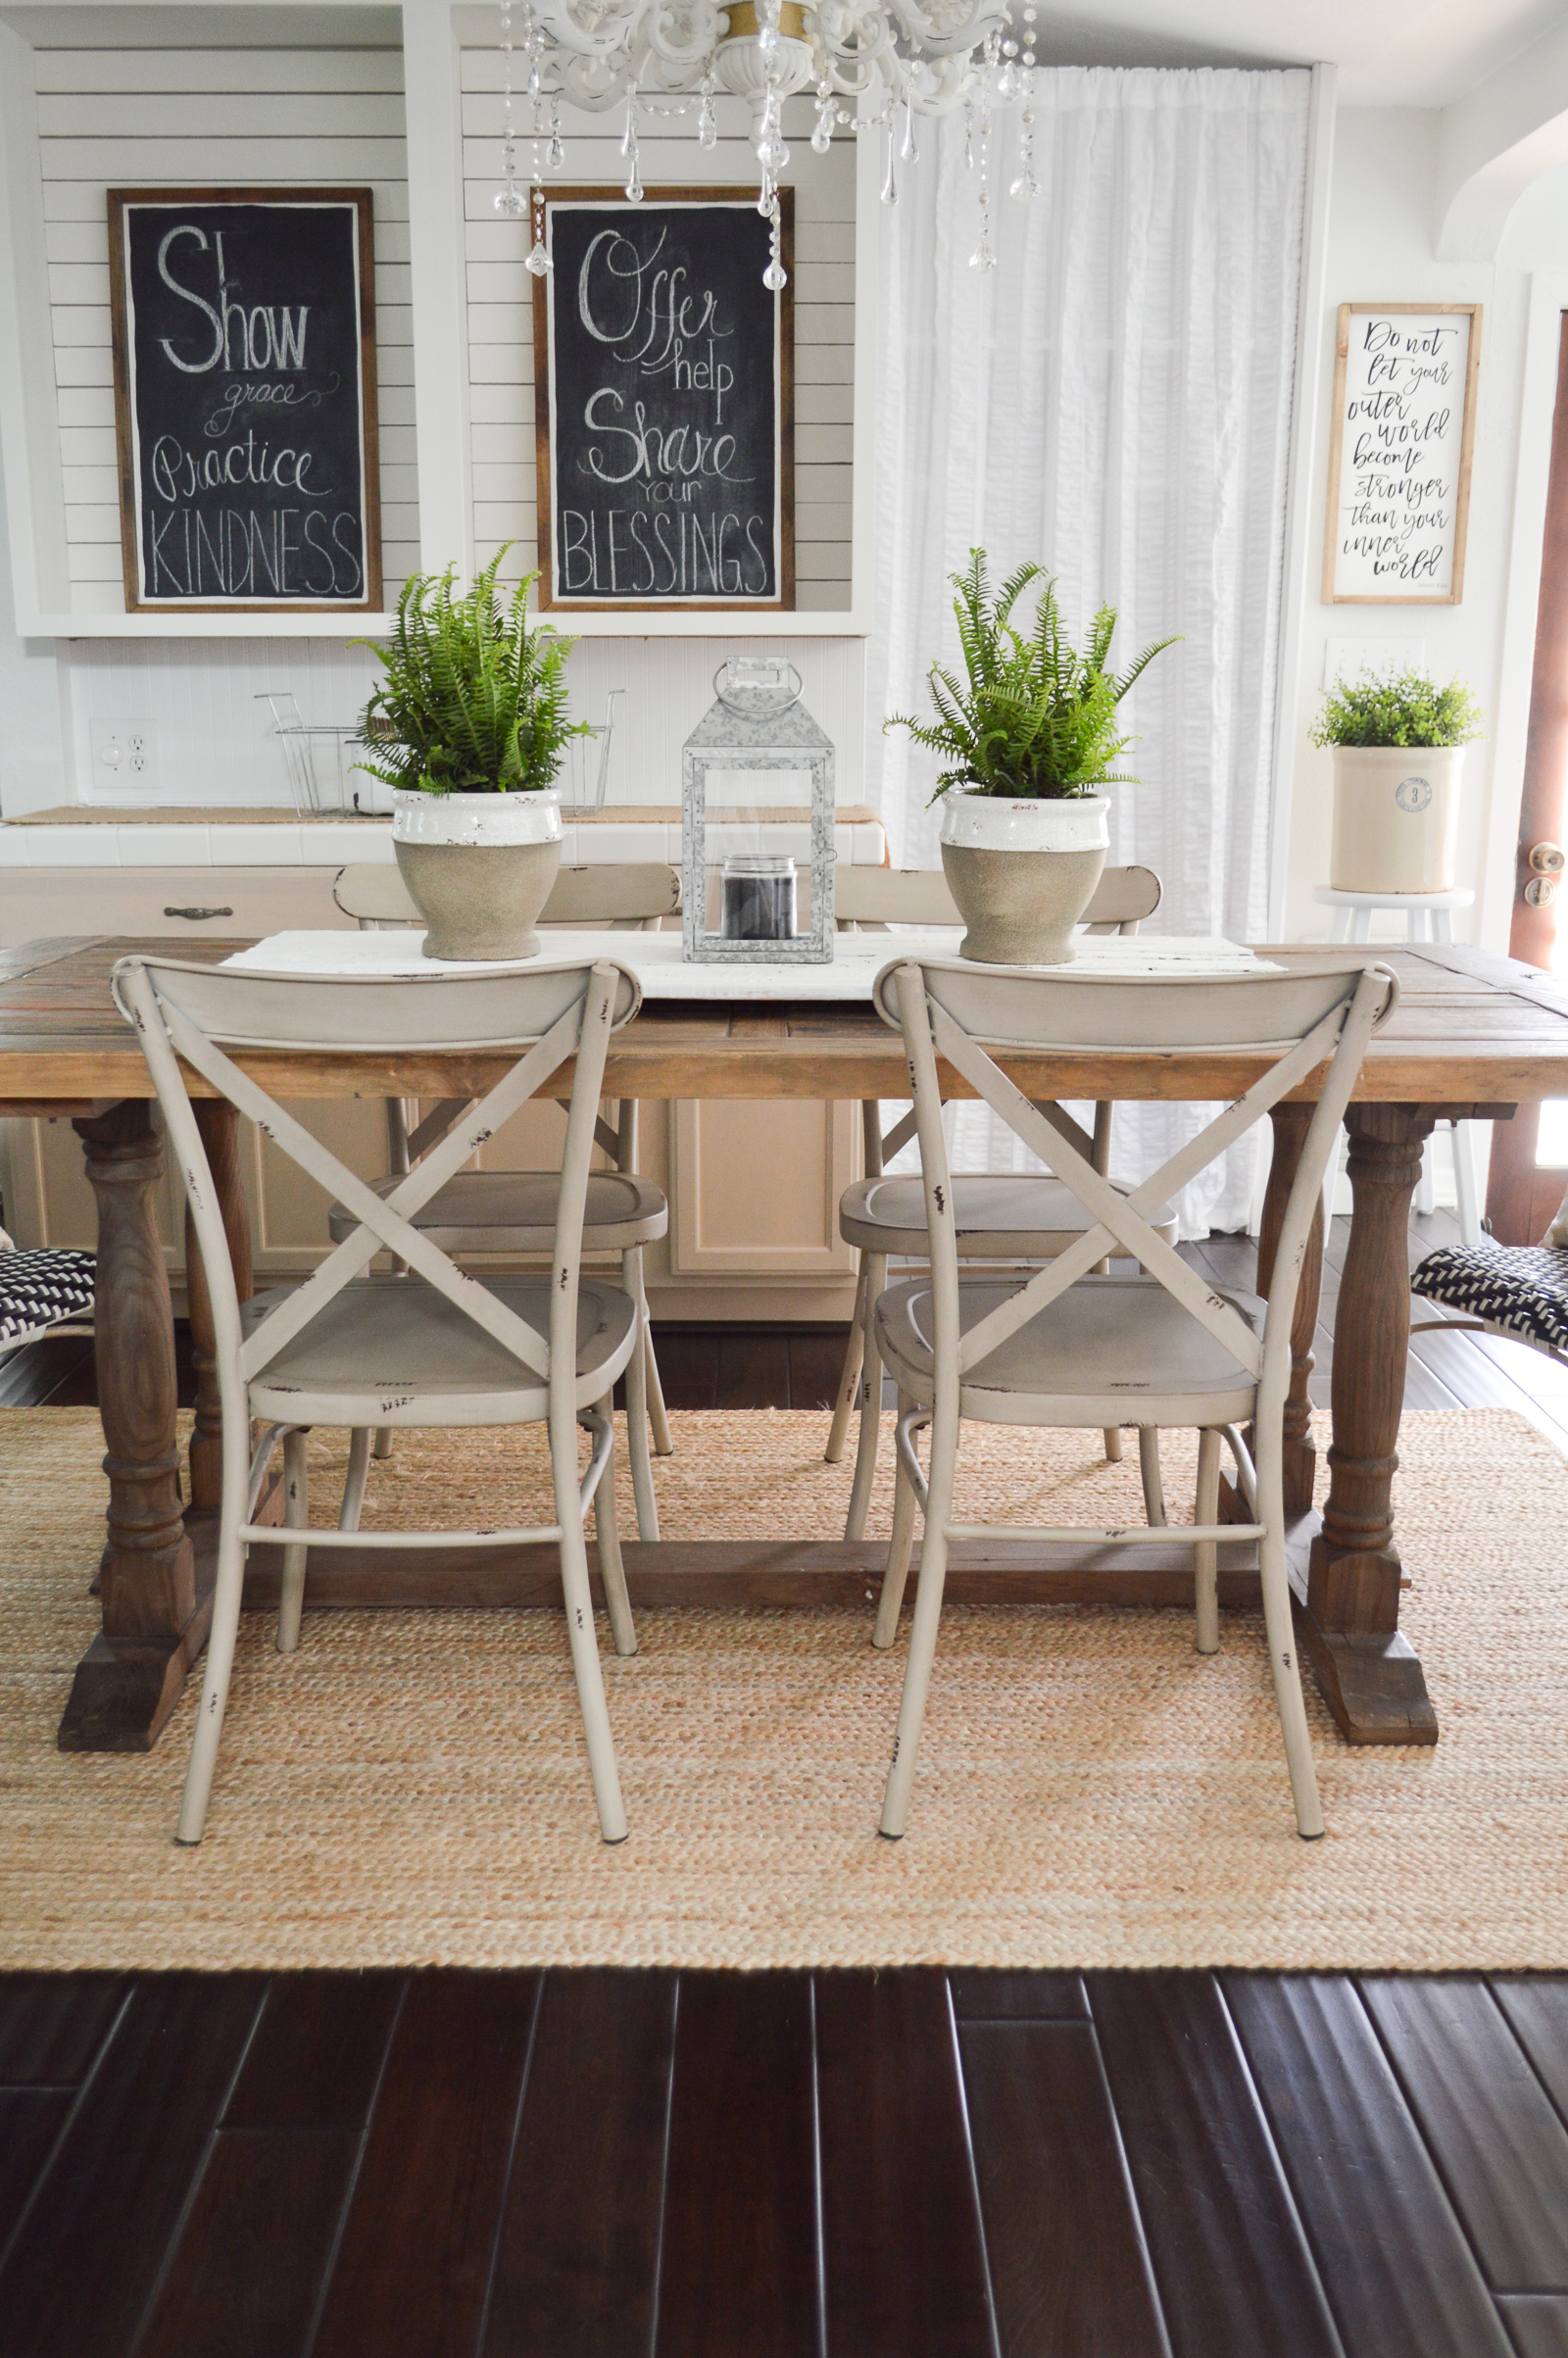 Outdoor In Spring Home Decor and Furniture Ideas #sponsored with Better Homes & Gardens at Walmart | Shiplap, chalkboard, farmhouse farm table, metal dining chairs, house plants